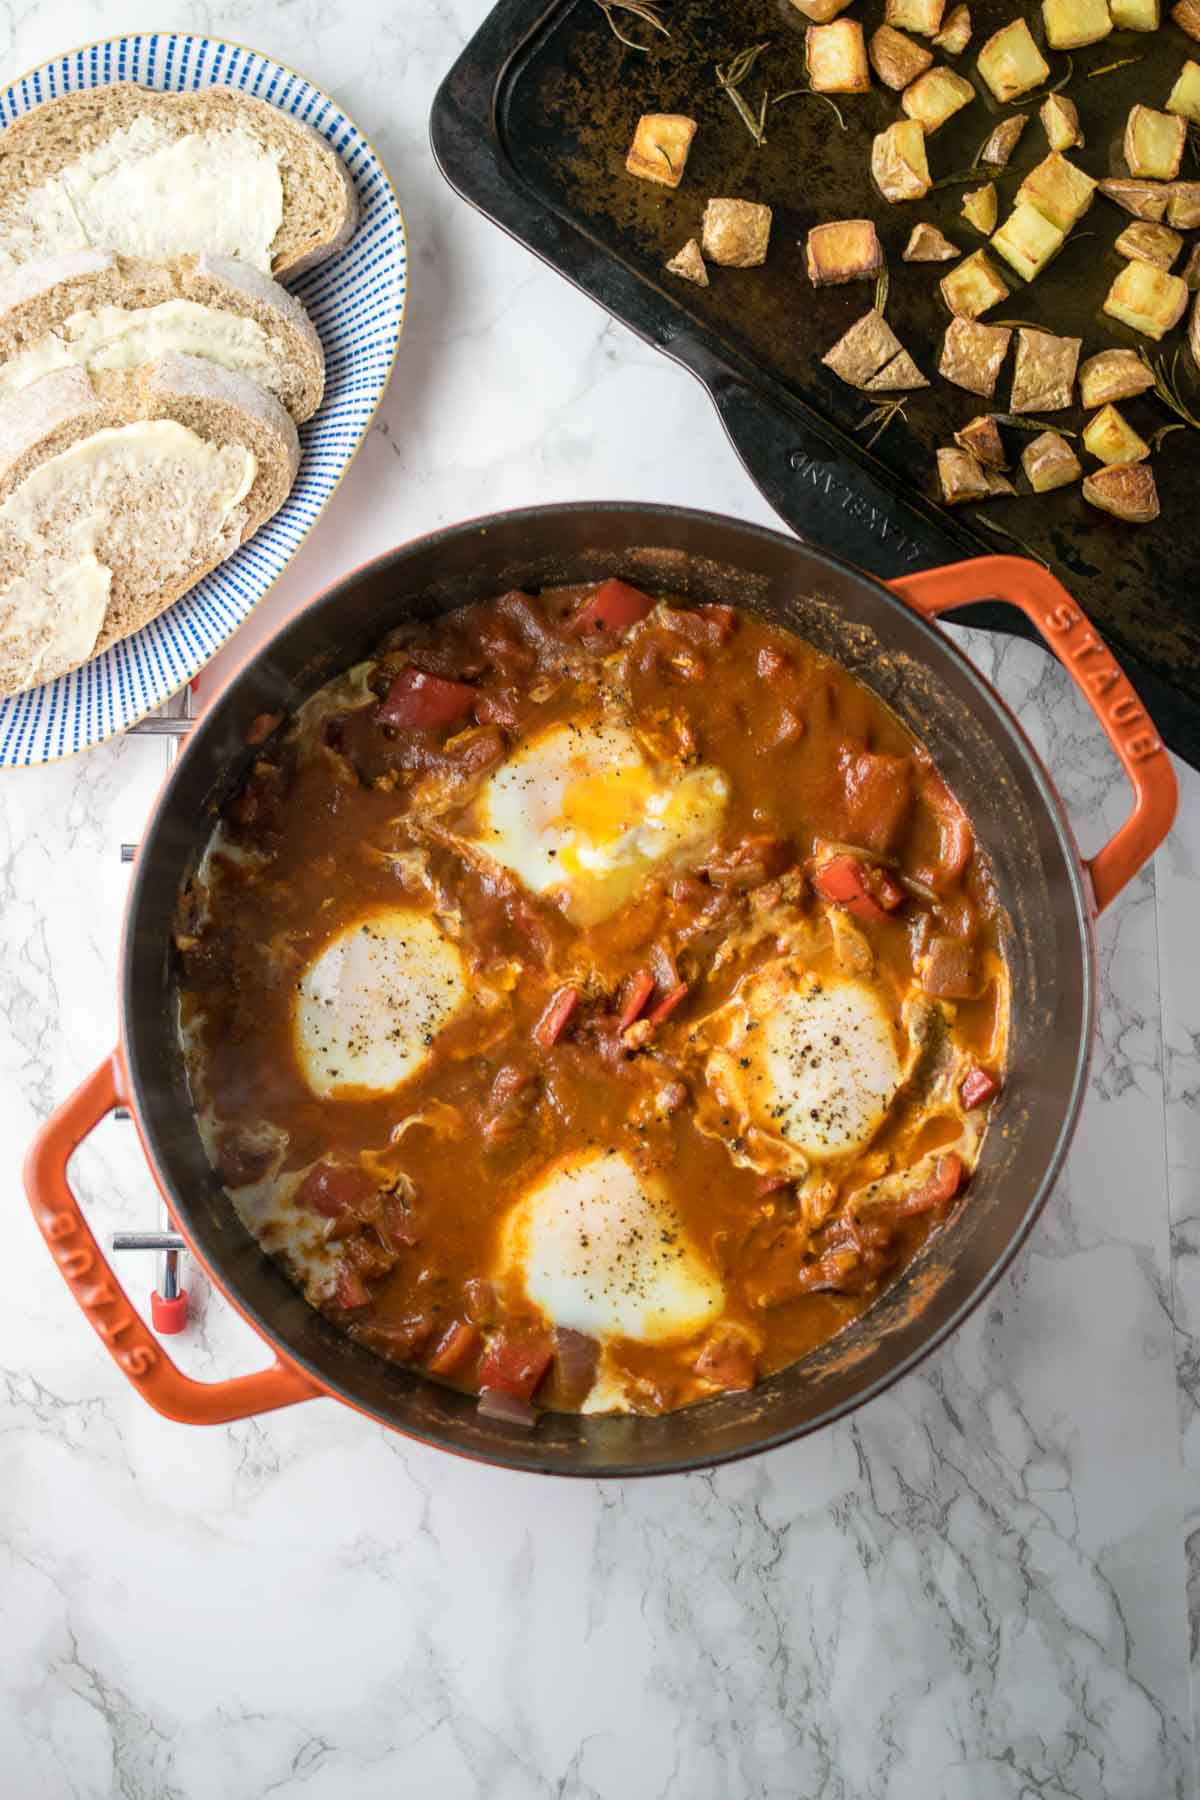 Spiced baked eggs